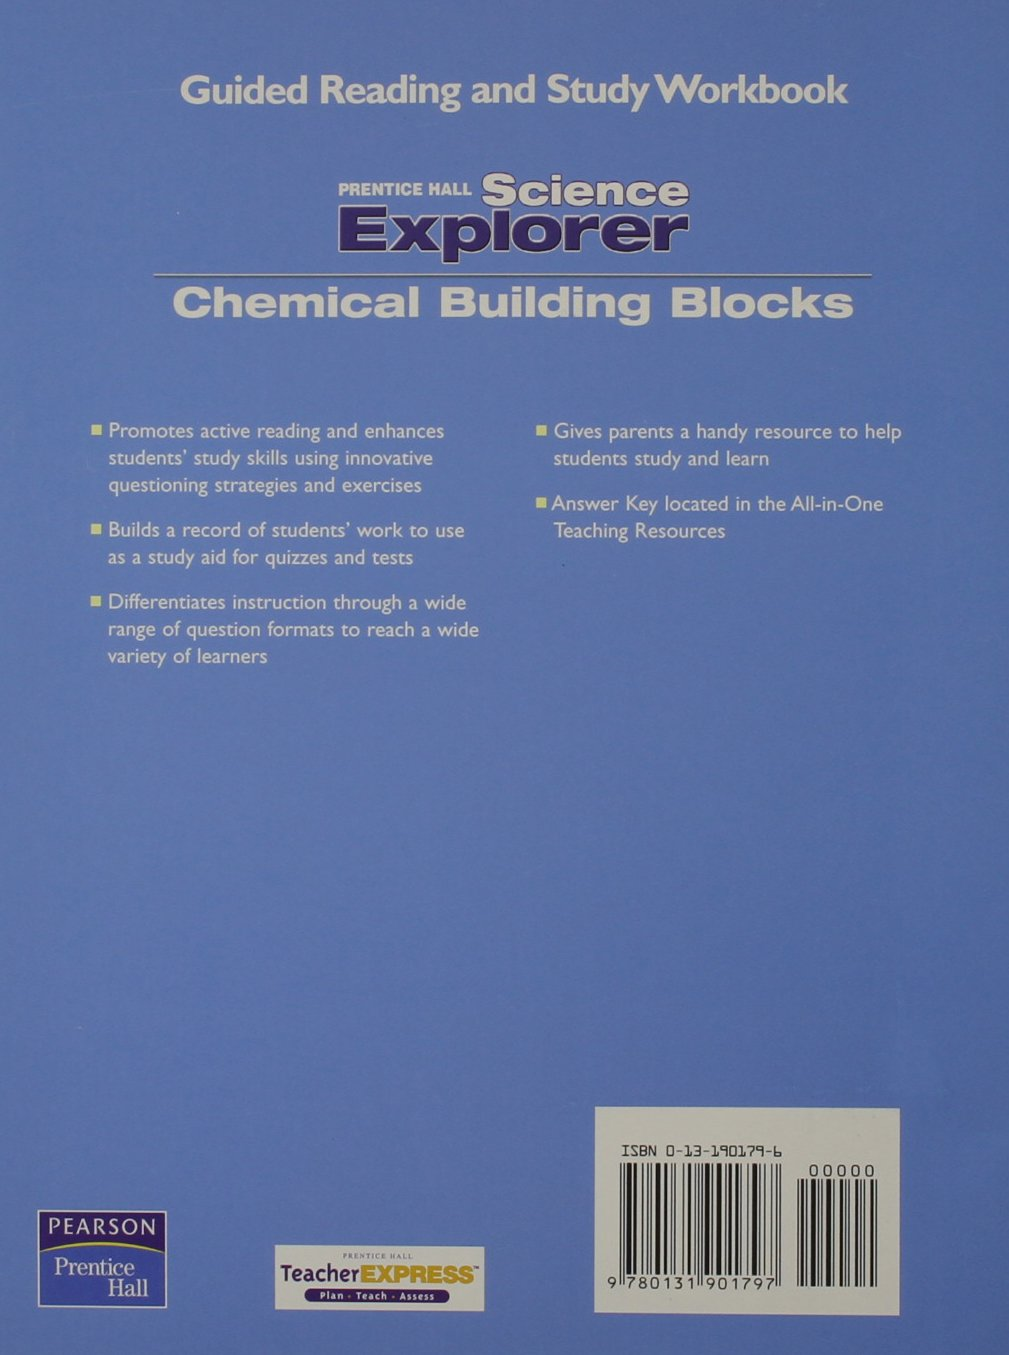 SCIENCE EXPLORER CHEMICAL BUILDING BLOCKS GUIDED READING AND STUDY ...